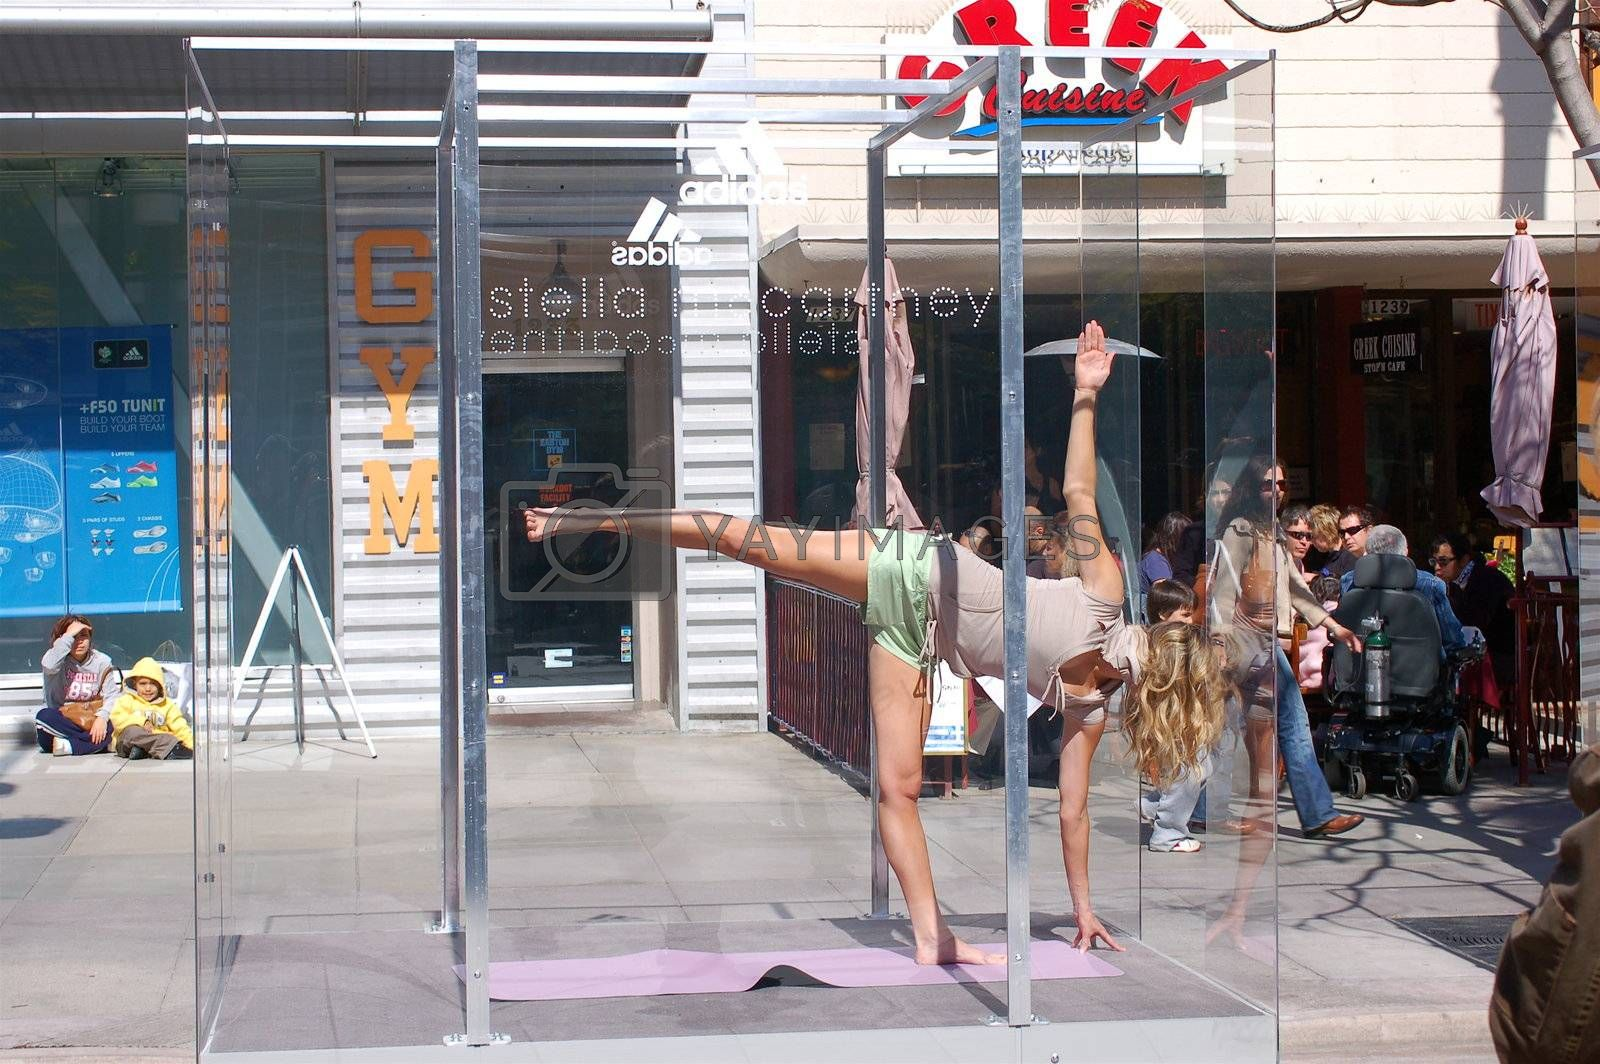 Woman mid yoga pose, wearing shorts and vest, in a glass box on a street in Santa Monica, California